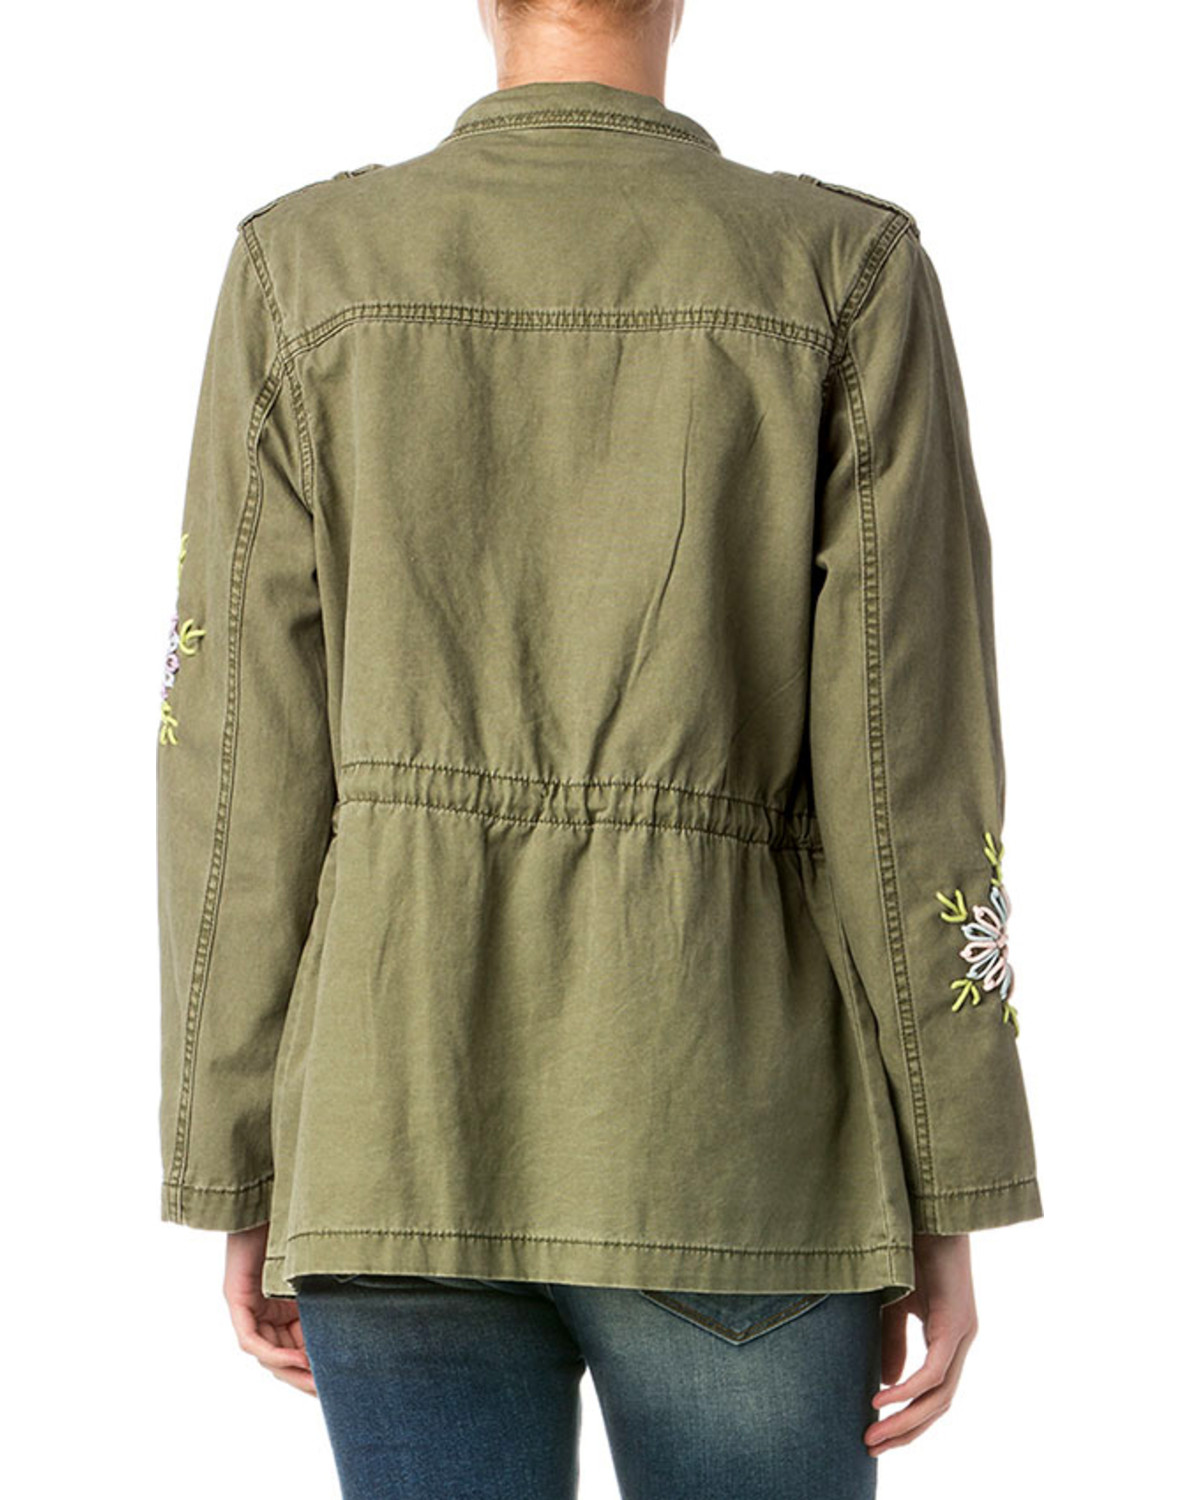 Miss me women s embroidered cargo jacket boot barn